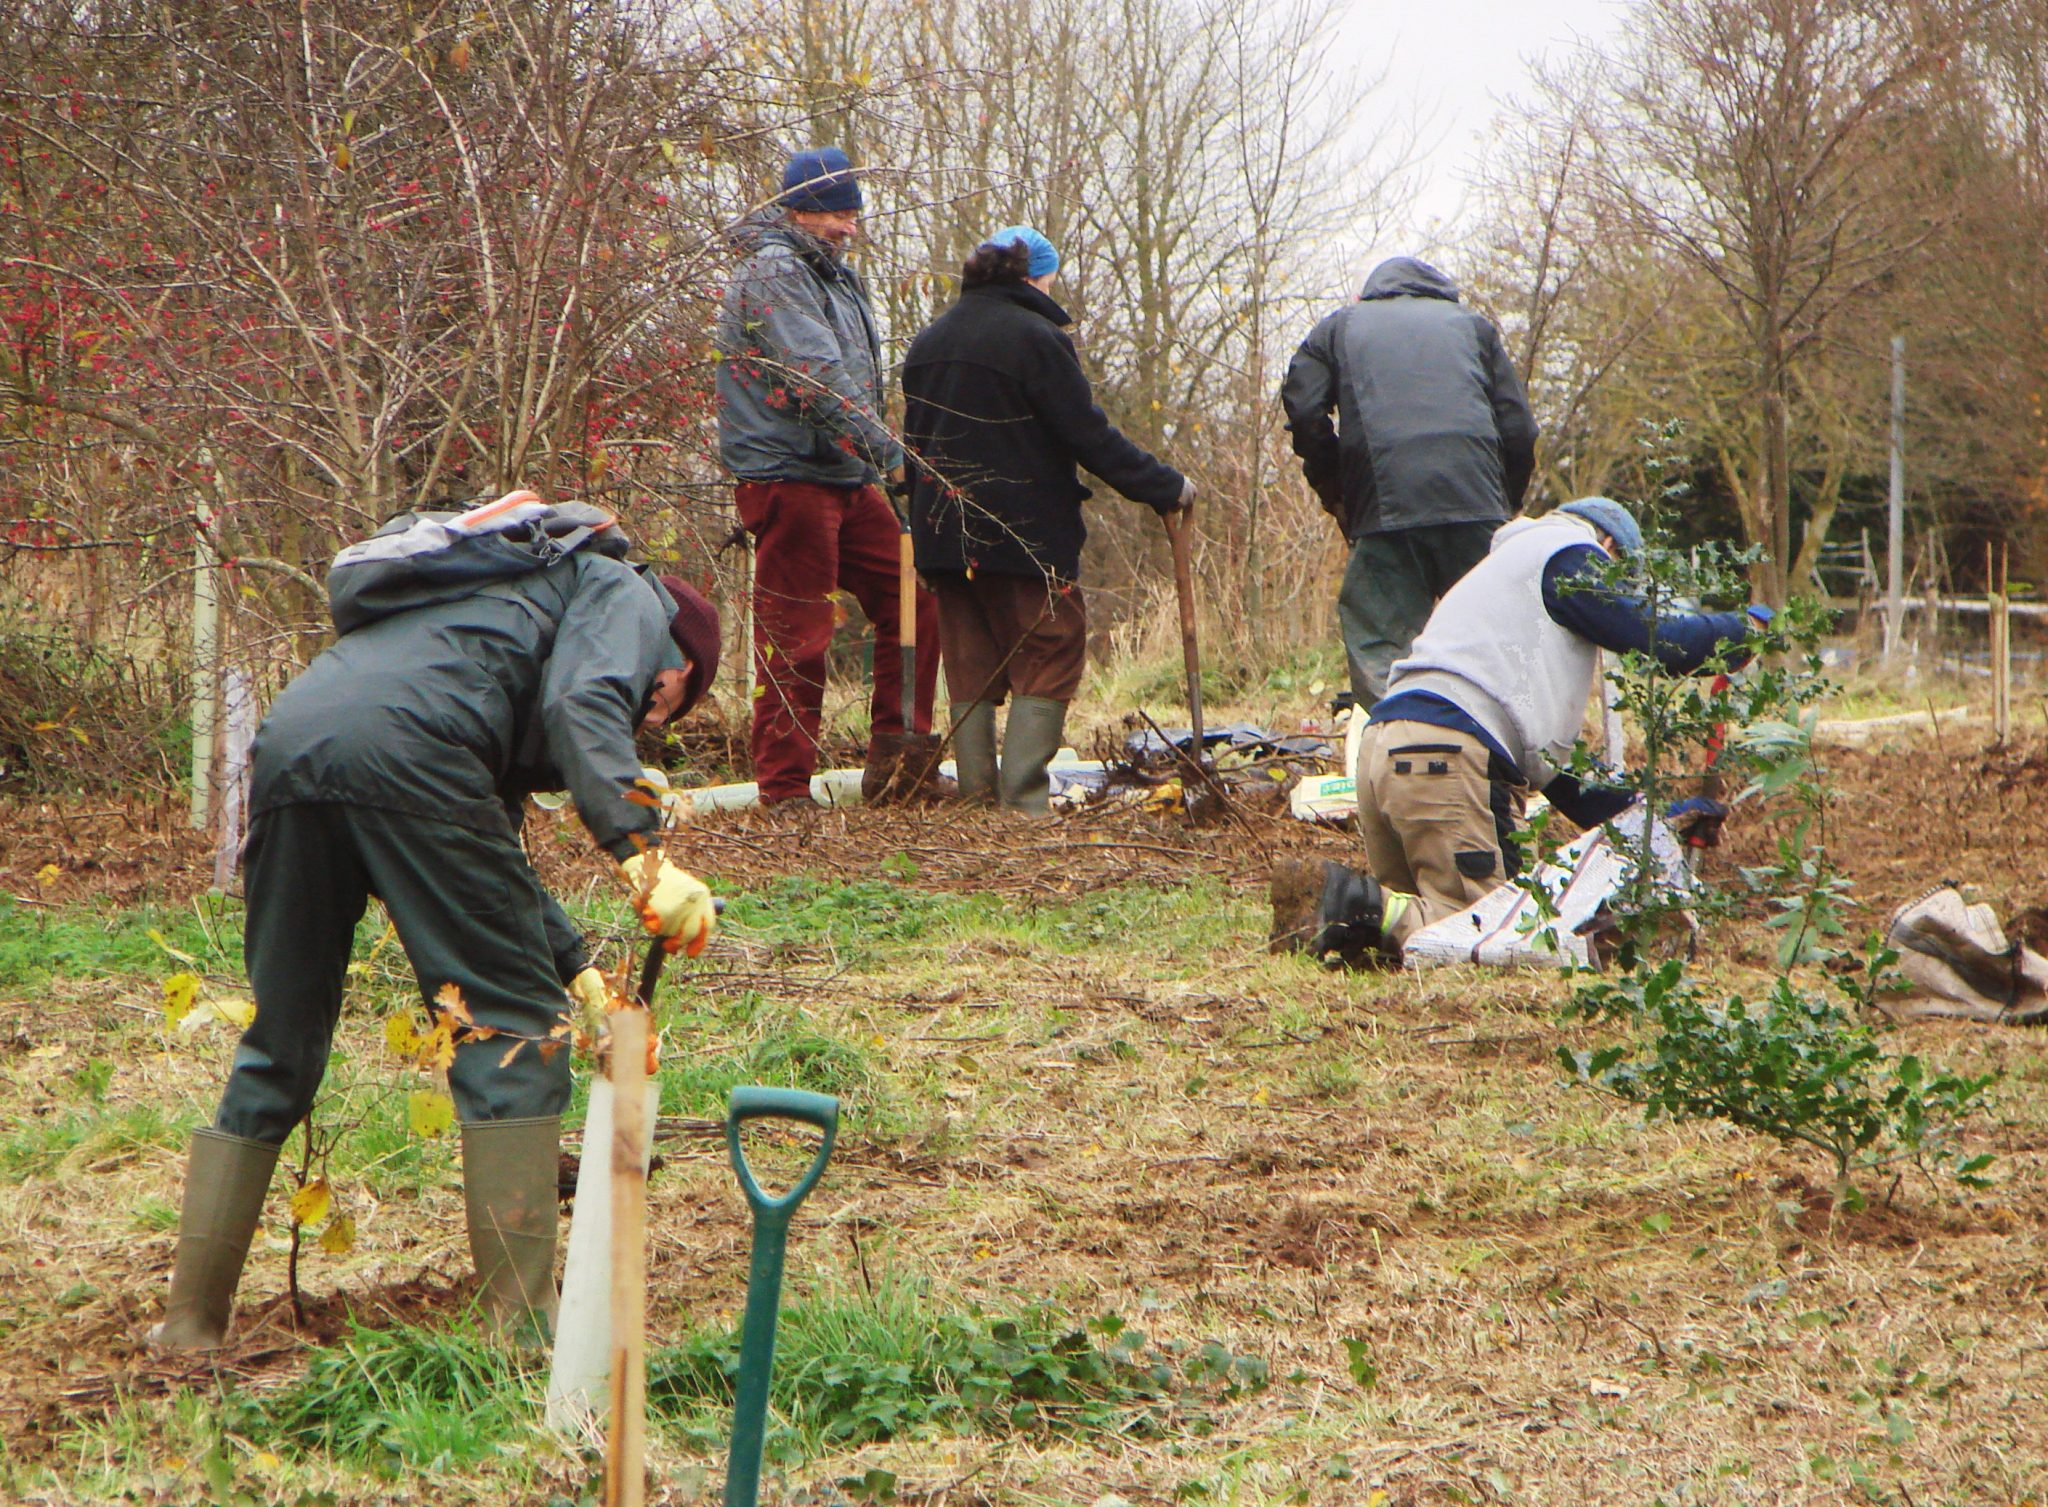 Members of SGS planting saplings, November 2019 (thanks to Terry Abbiss for the picture)